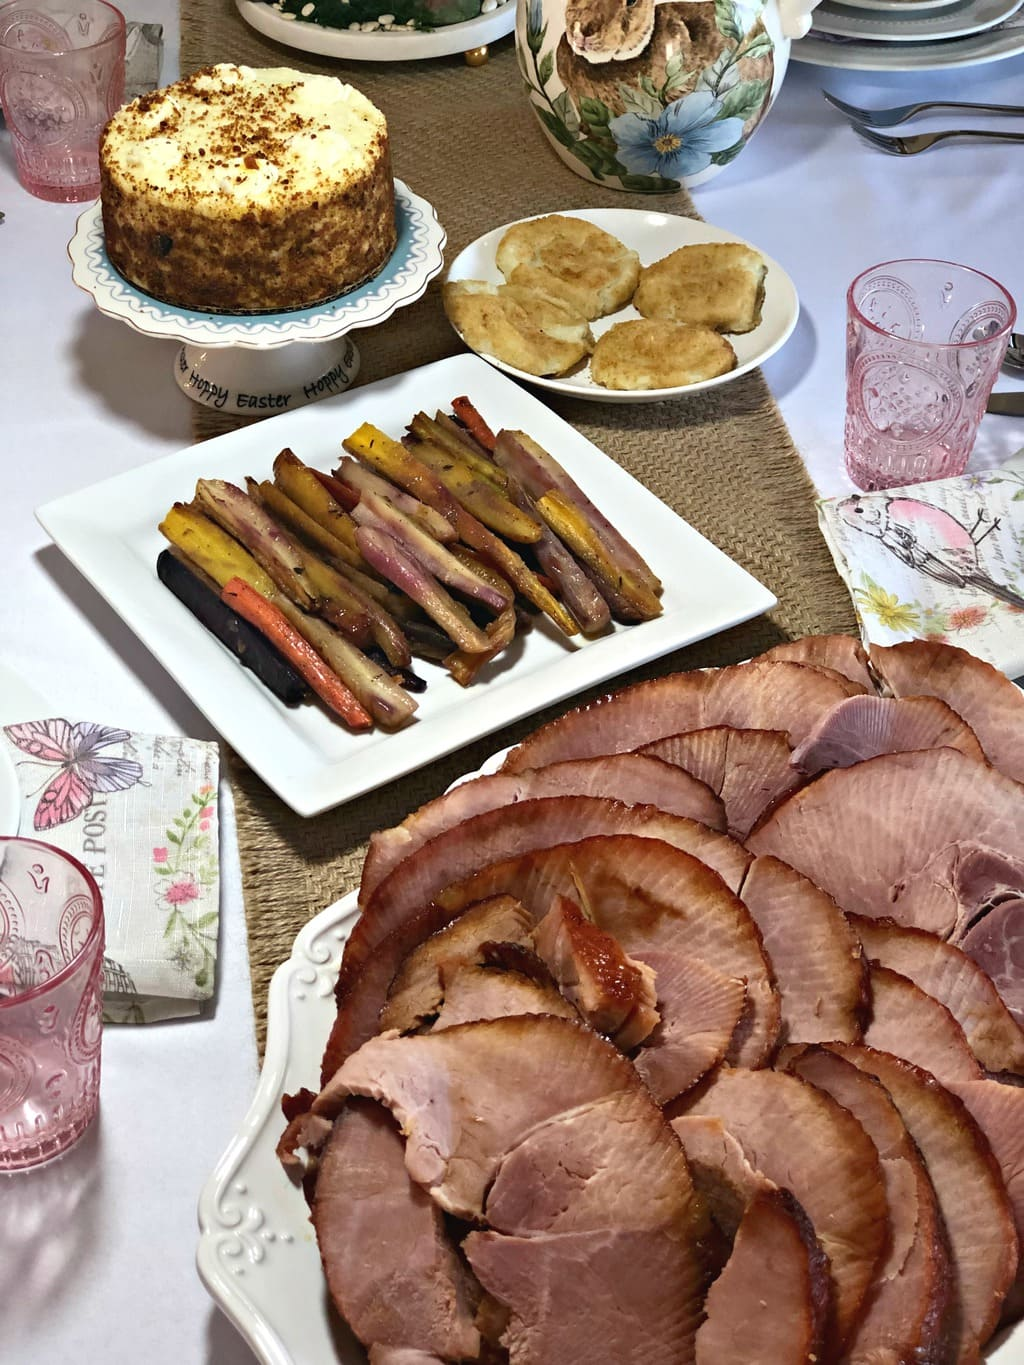 photo of glazed rainbow carrots, carrot cake and Easter ham from Omaha Steaks